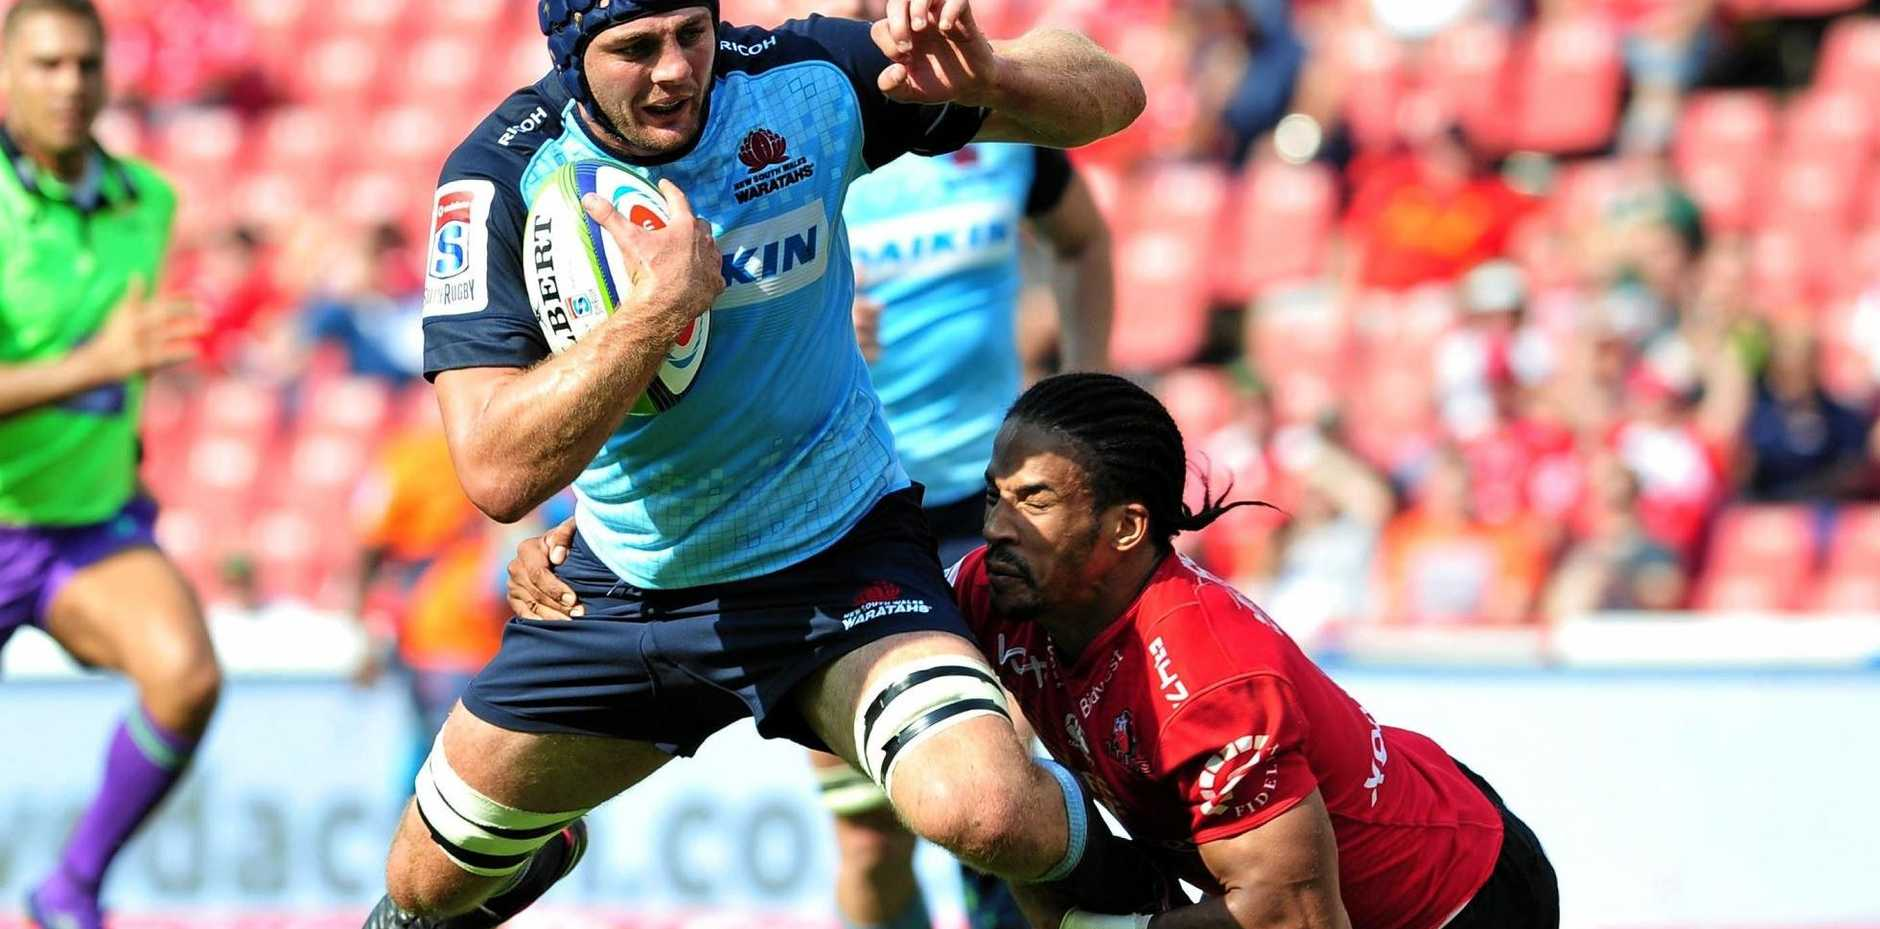 CRASH: Waratahs' Dean Mumm is about to hit the deck after being tackled by Courtnall Skosan in the Lions' mauling win at Ellis Park, Johannesburg.